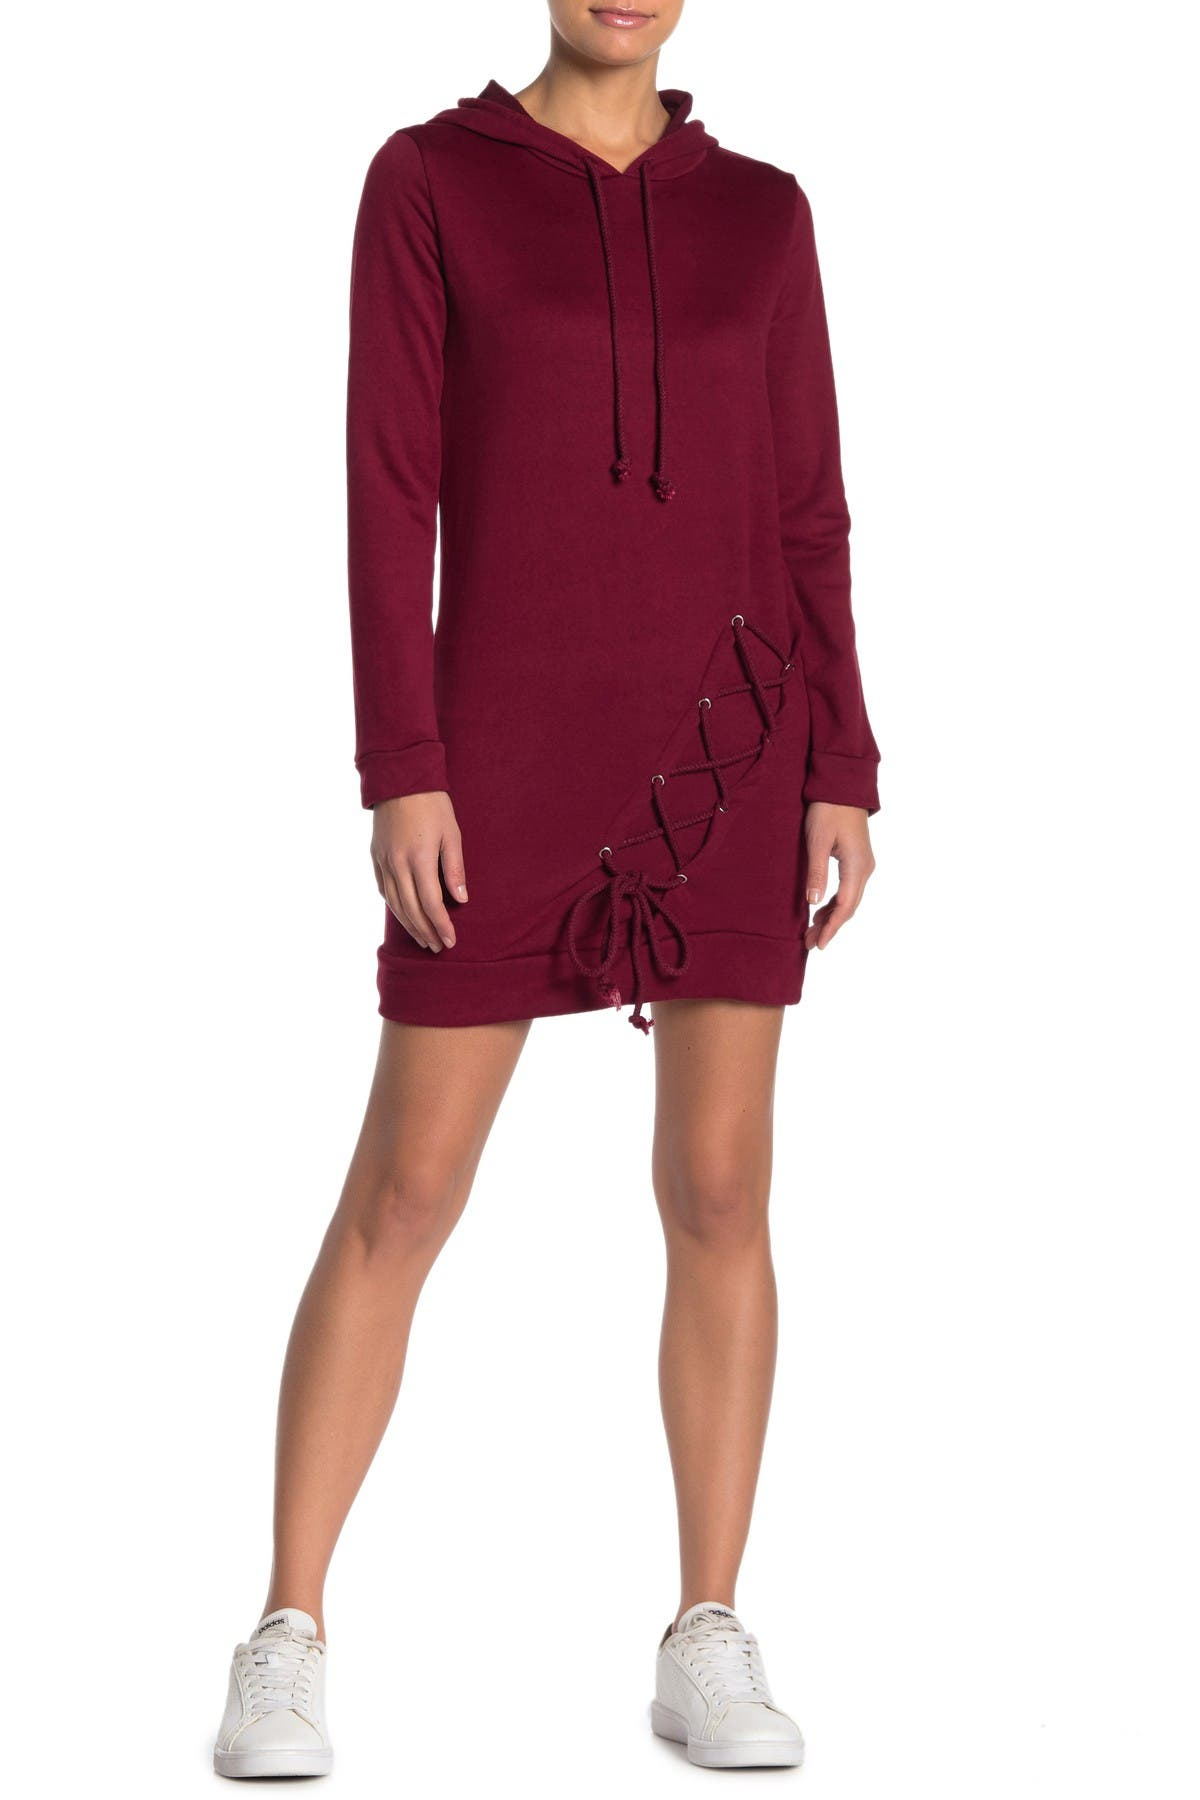 Image of dee elly Lace Up Hoodie Dress